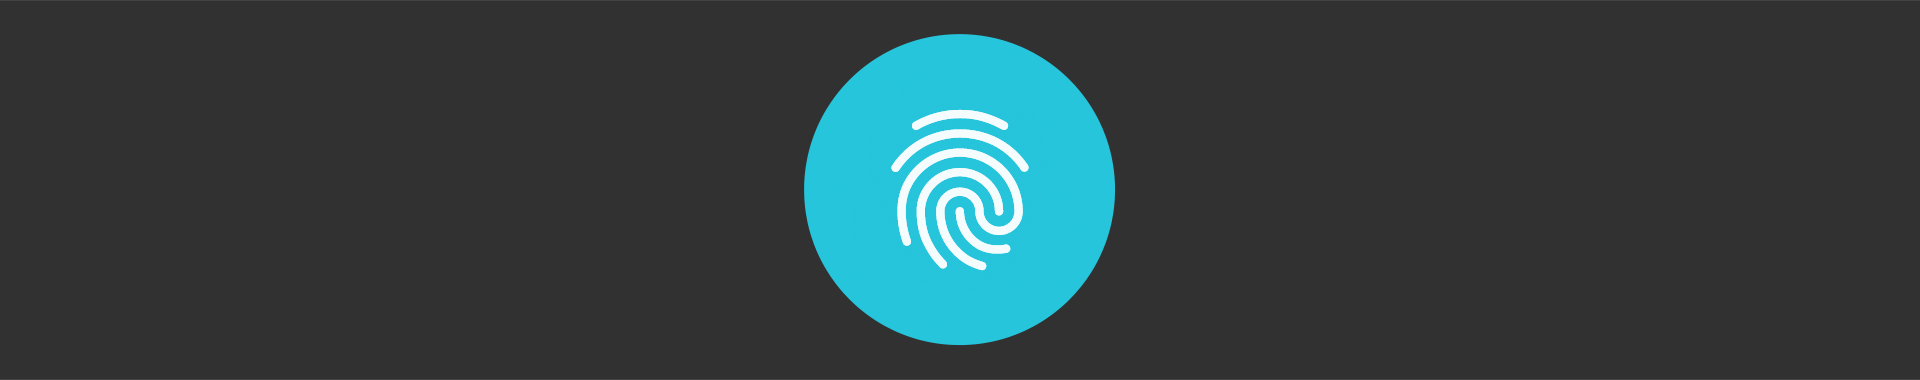 Secure your sensitive data with your Fingerprint on Android